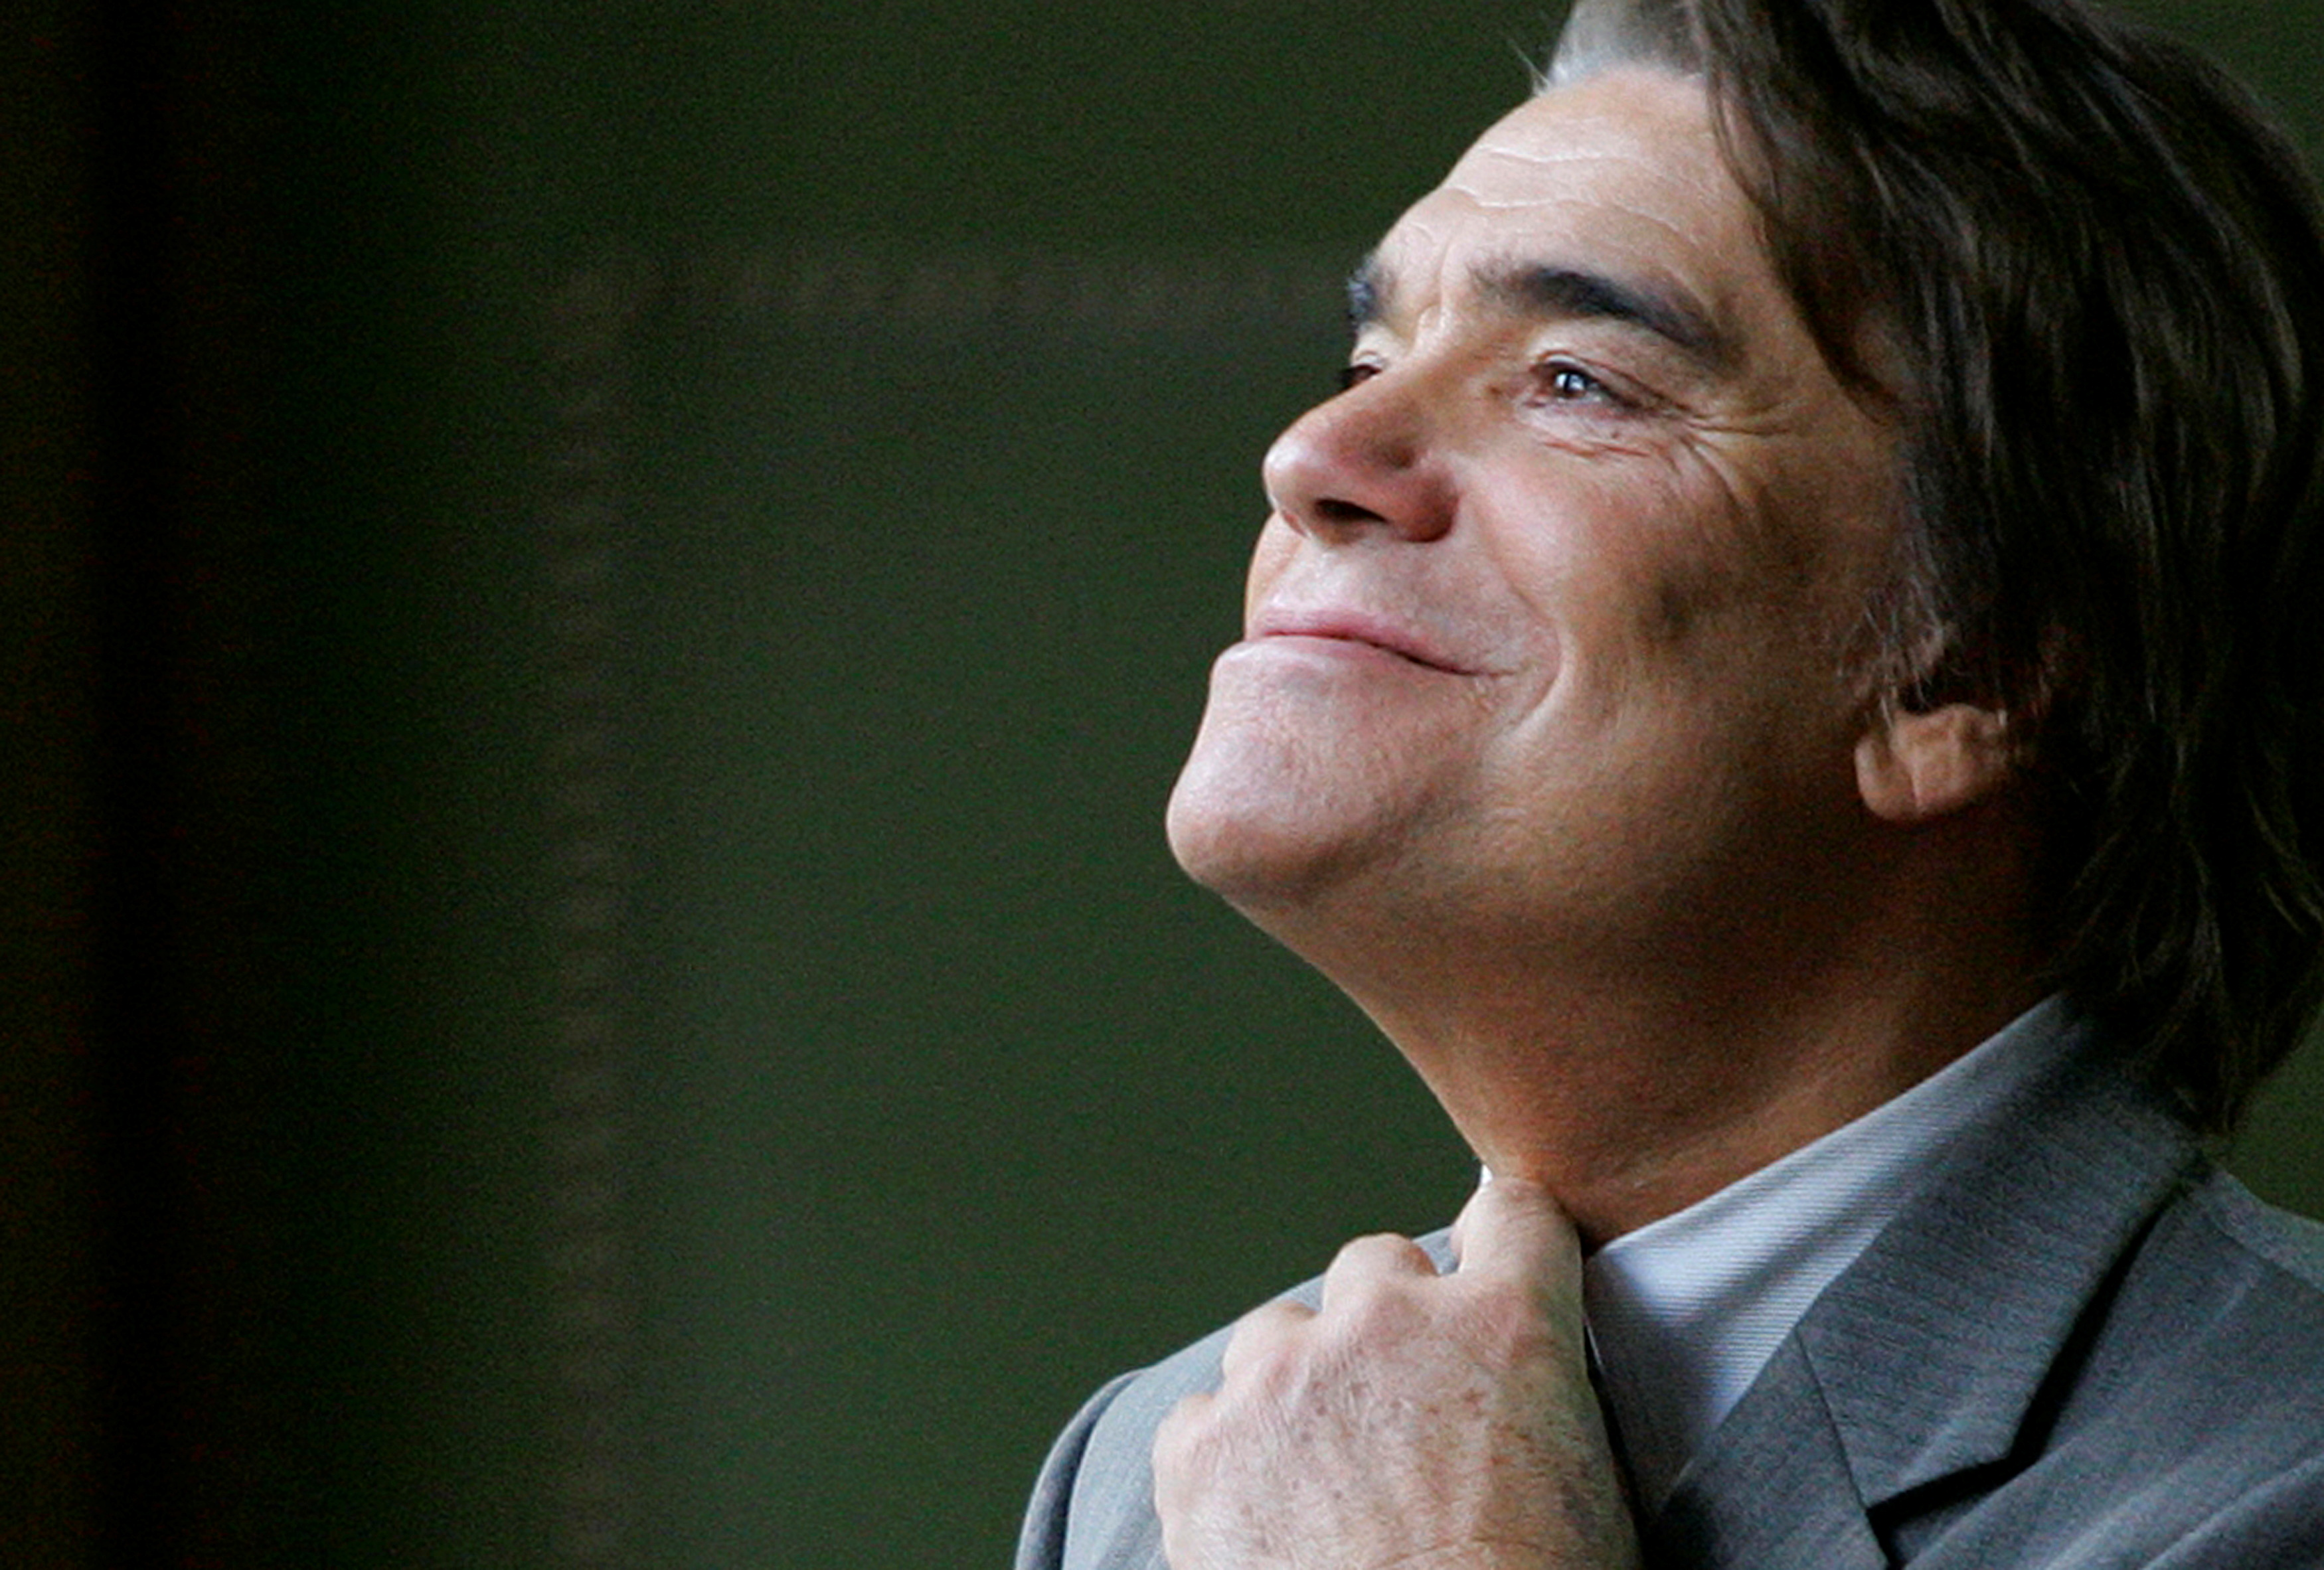 French businessman Bernard Tapie adjusts his tie at the Justice court in Paris in this file photo October 19, 2005. REUTERS/Charles Platiau/File Photo